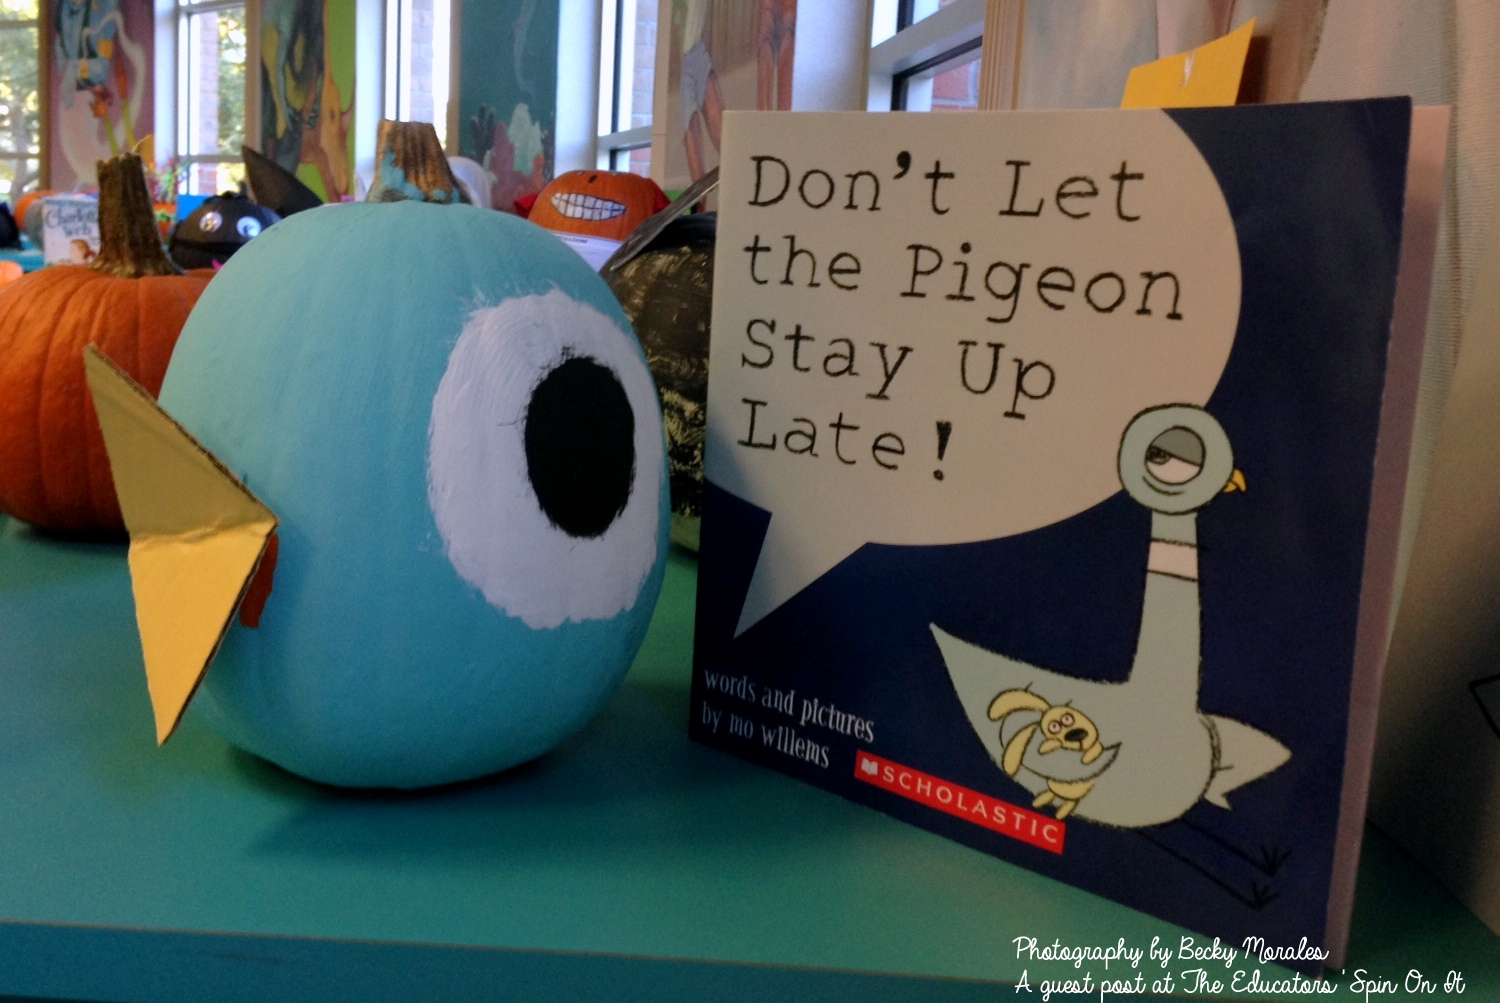 Directions on how to make the Don't Let the Pigeon Stay Up Late! Inspired Story Book Pumpkin Character: